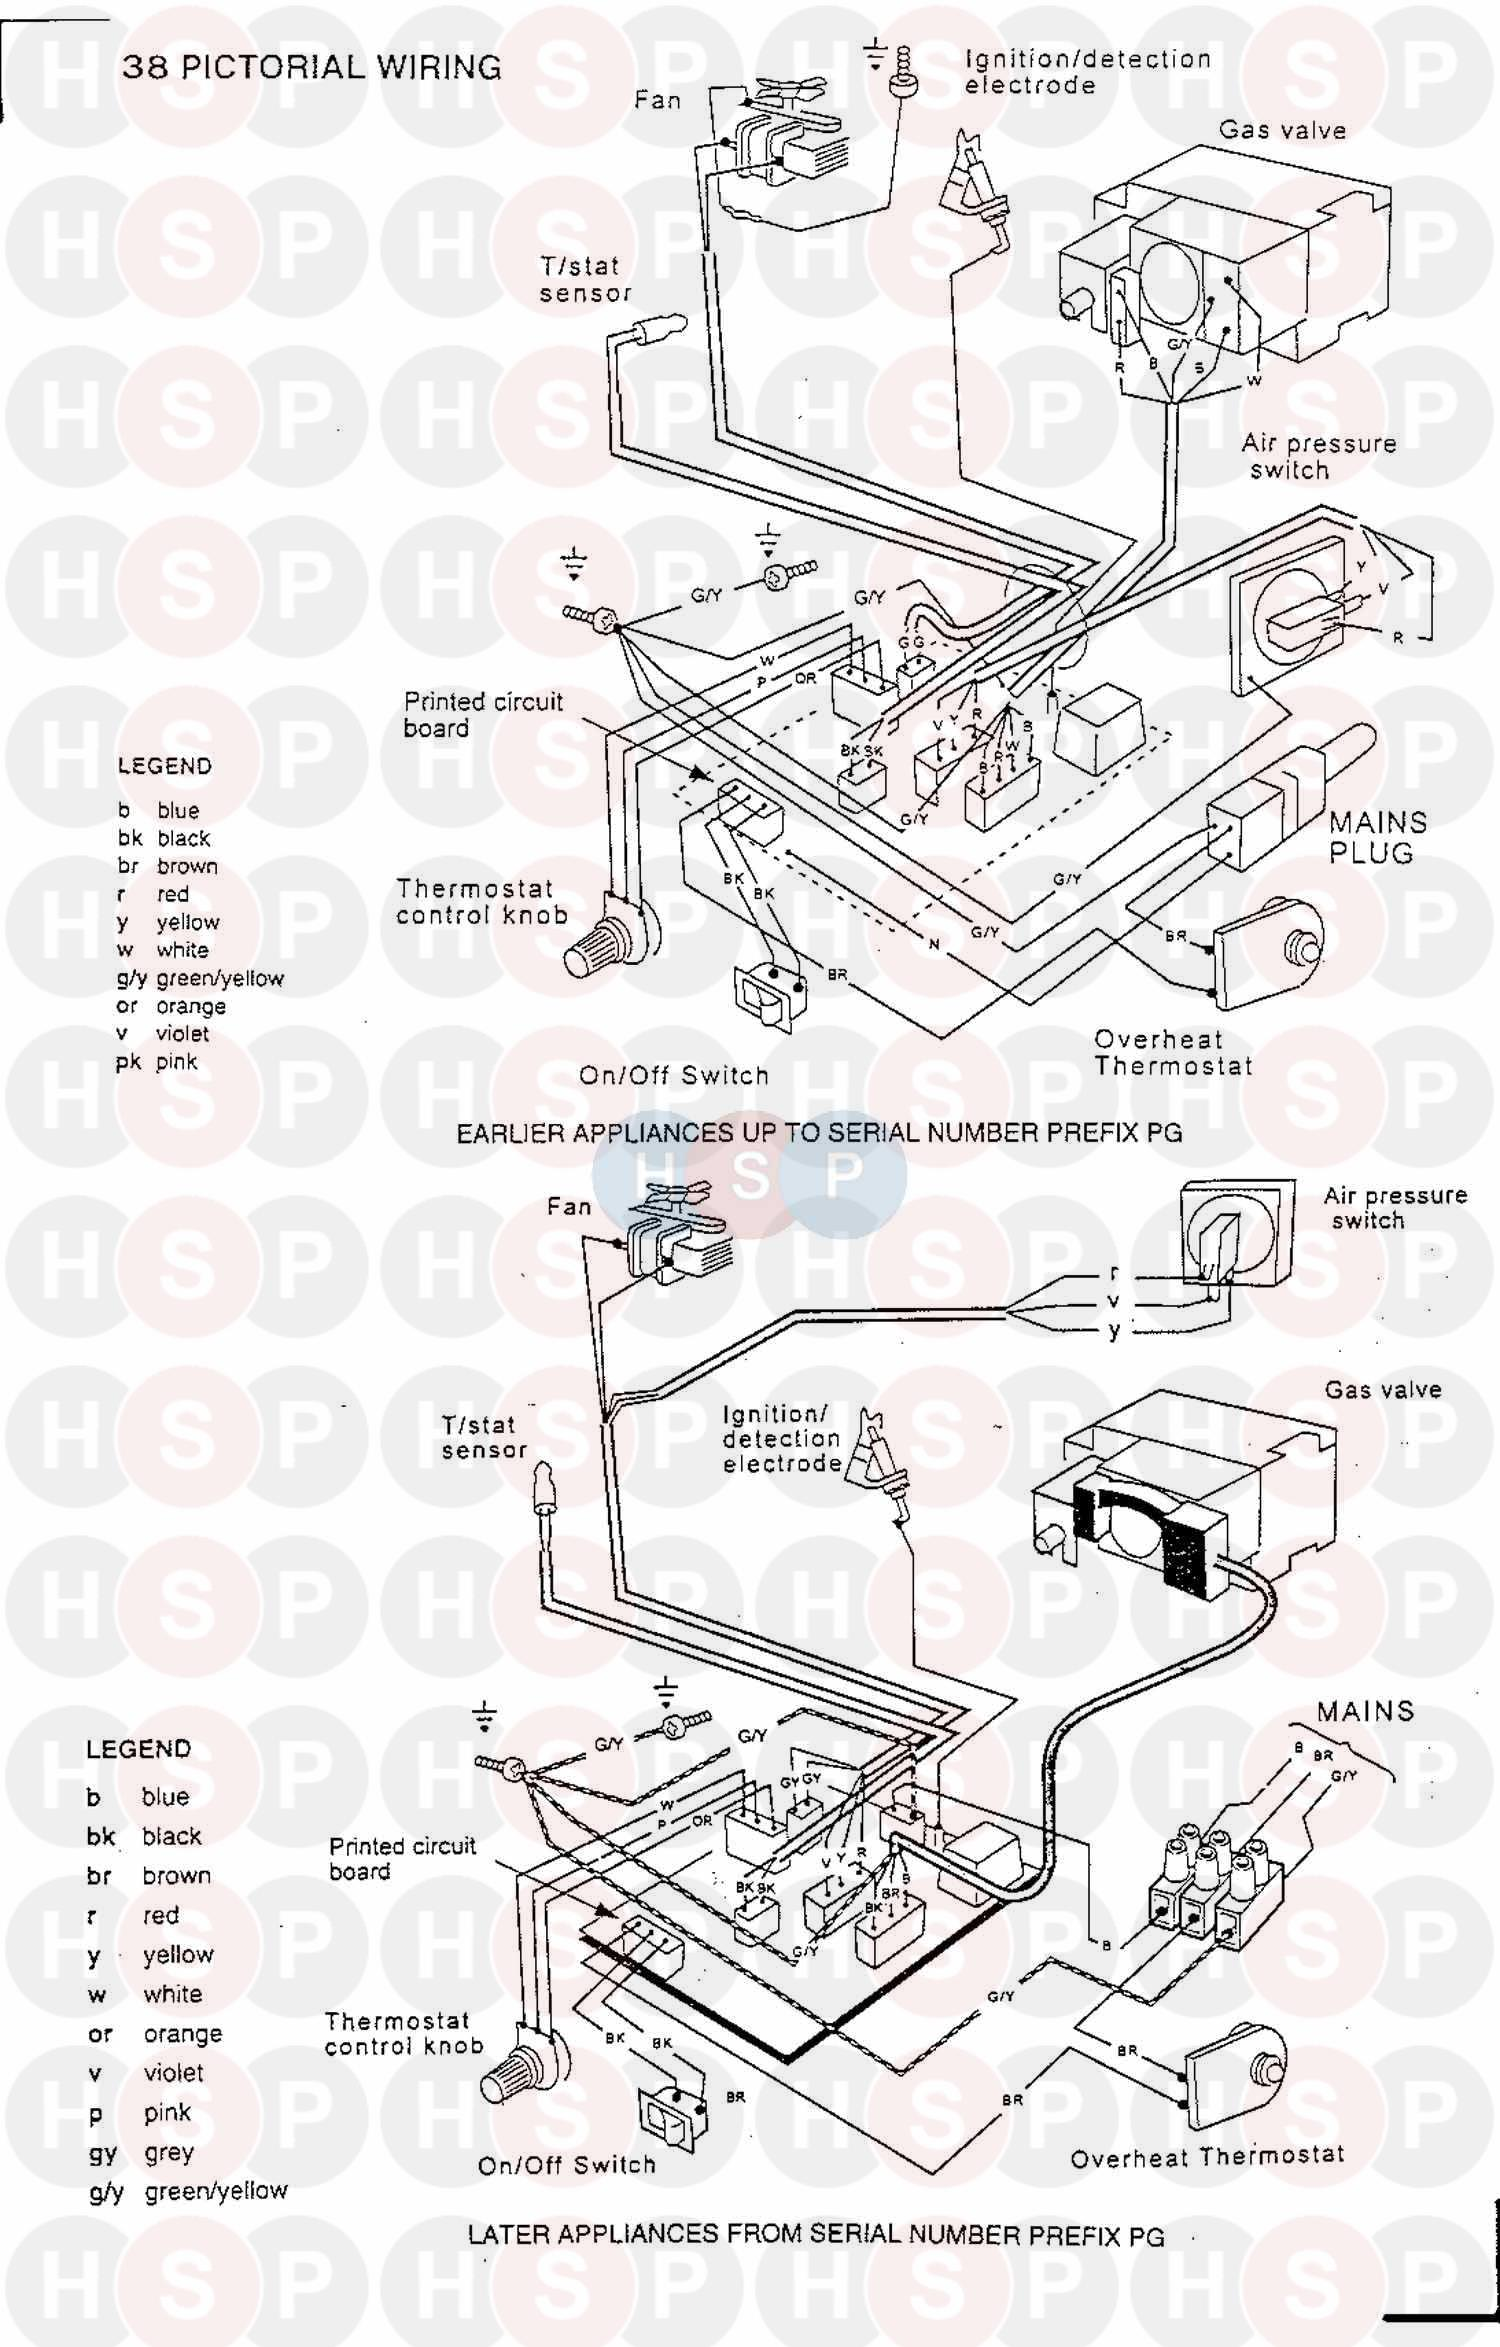 R Pod Wiring Diagram Ideal Classic Lxff 270 1 Heating Spare Parts Click The To Open It On A New Page